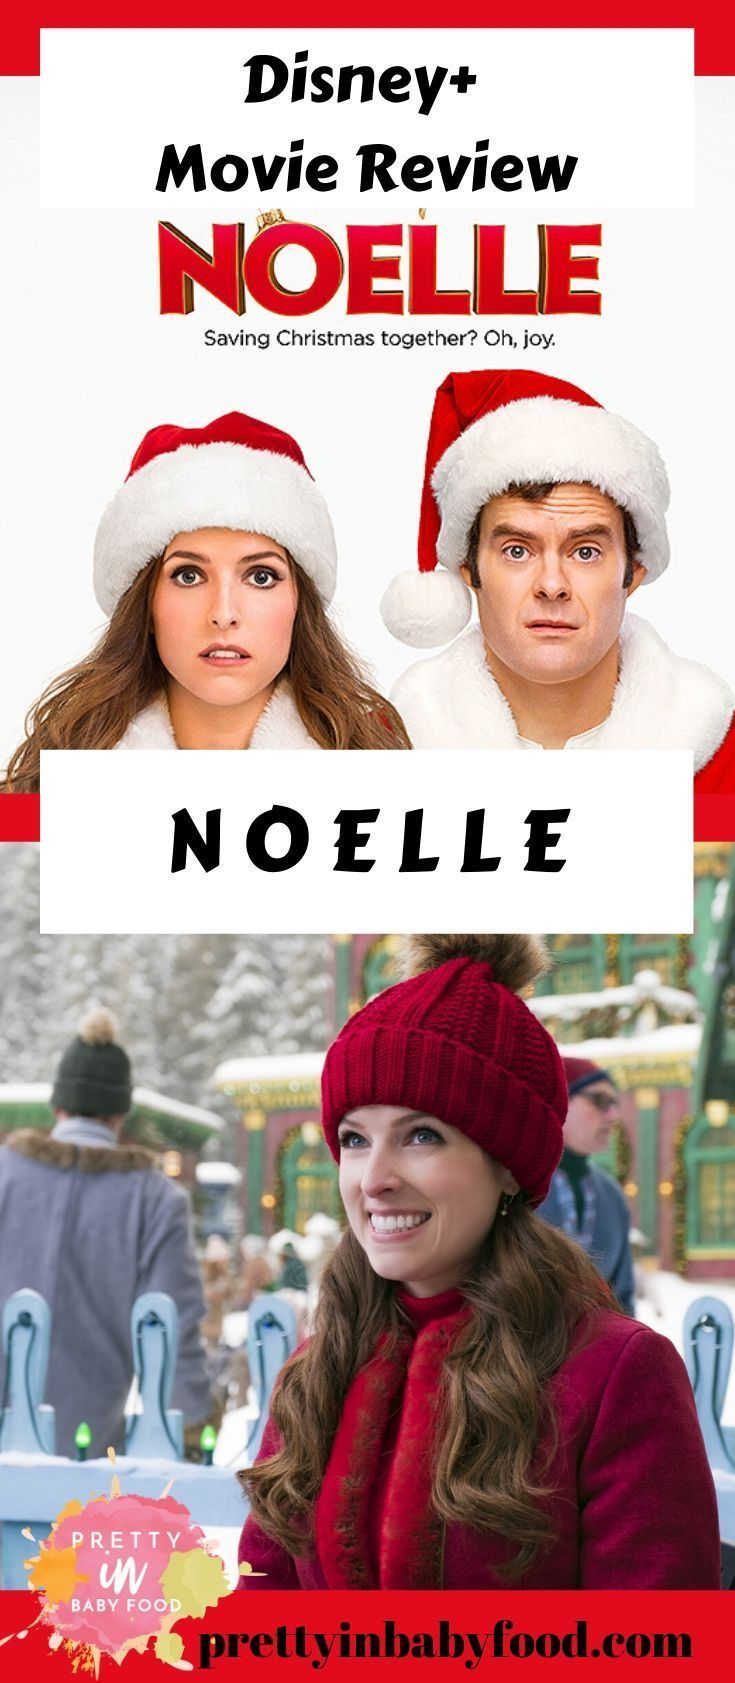 Noelle Disney+ Movie Review (With images) Kids christmas